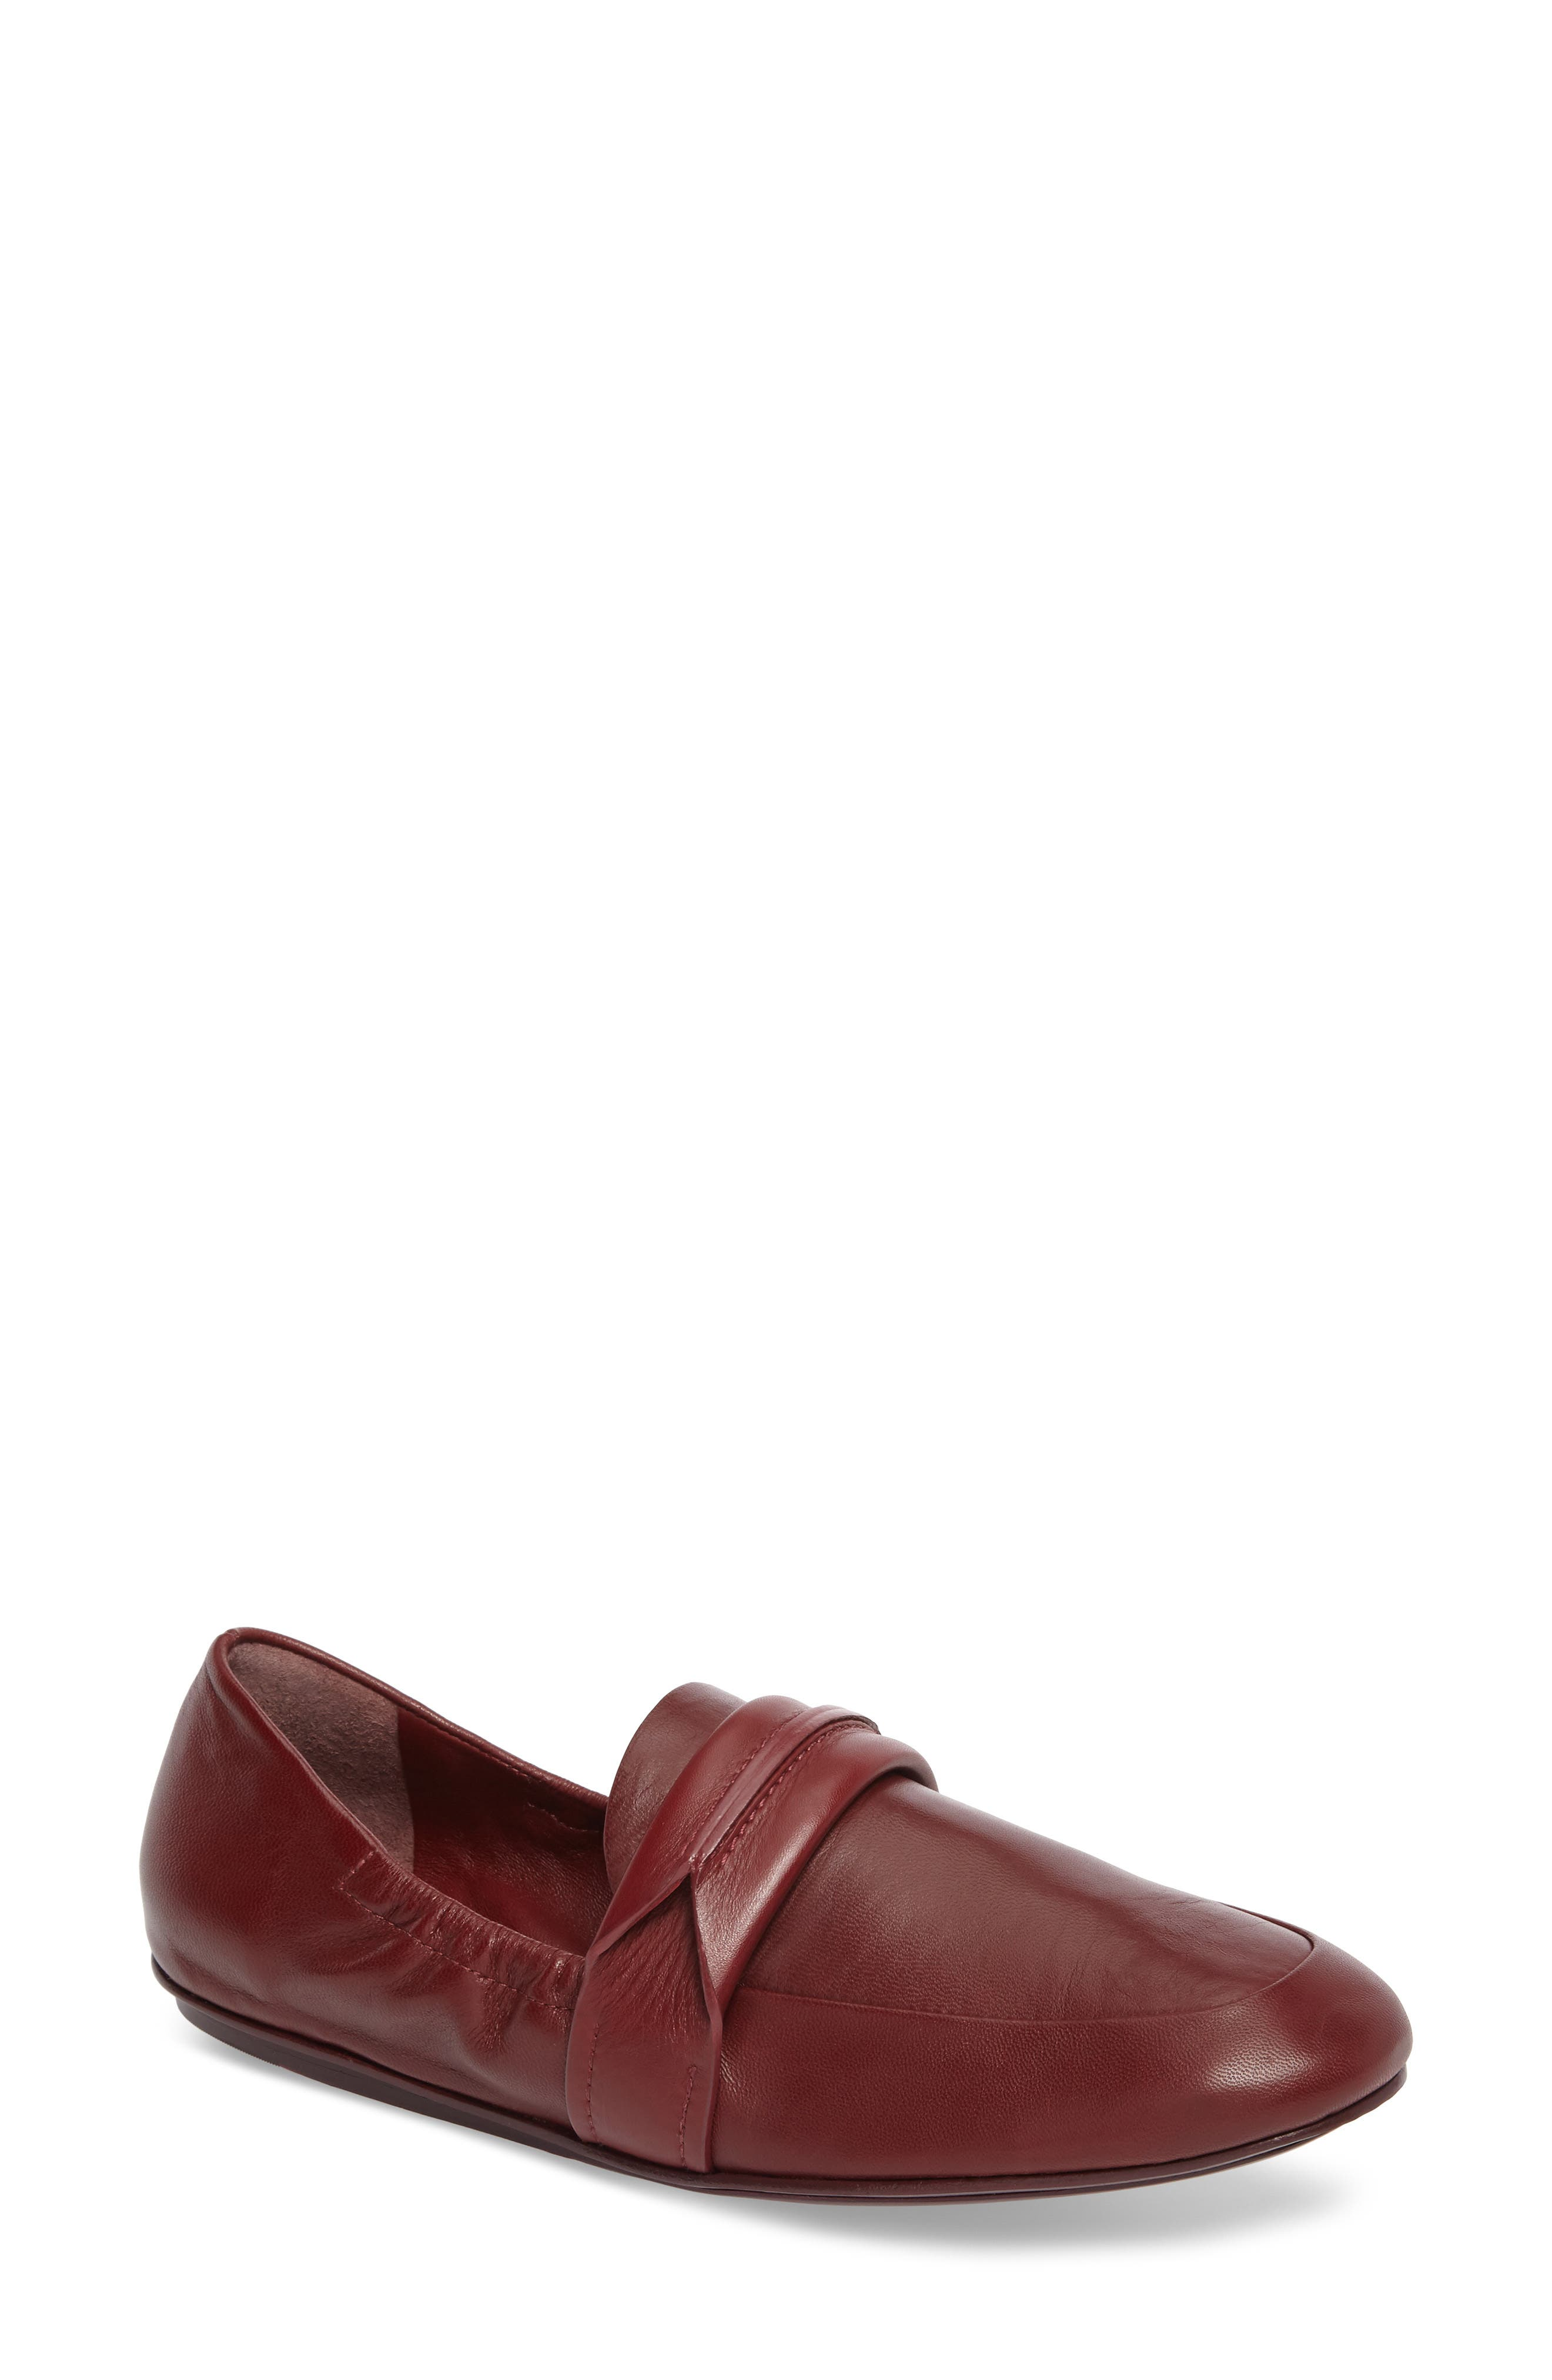 Main Image - Mercedes Castillo Erin Loafer Flat (Women)